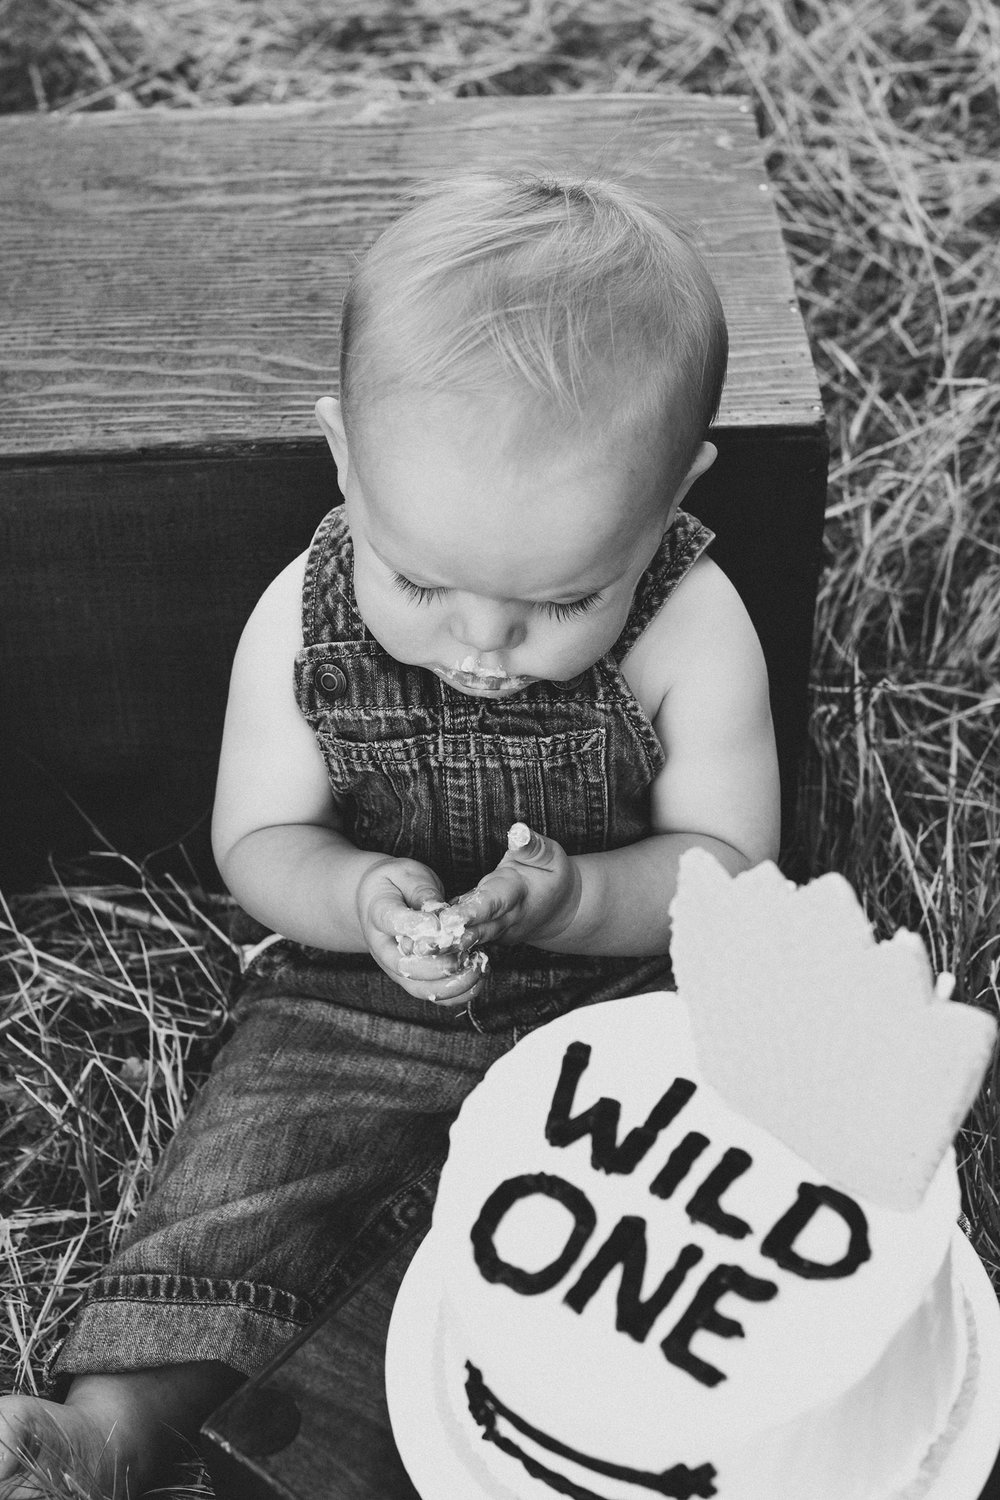 Kennewick family photos_Kennewick children photos_one year old photos_cake smash_baby photos_outdoor photo session_where the wild things are_Jordan Edens Photography_JEP_4